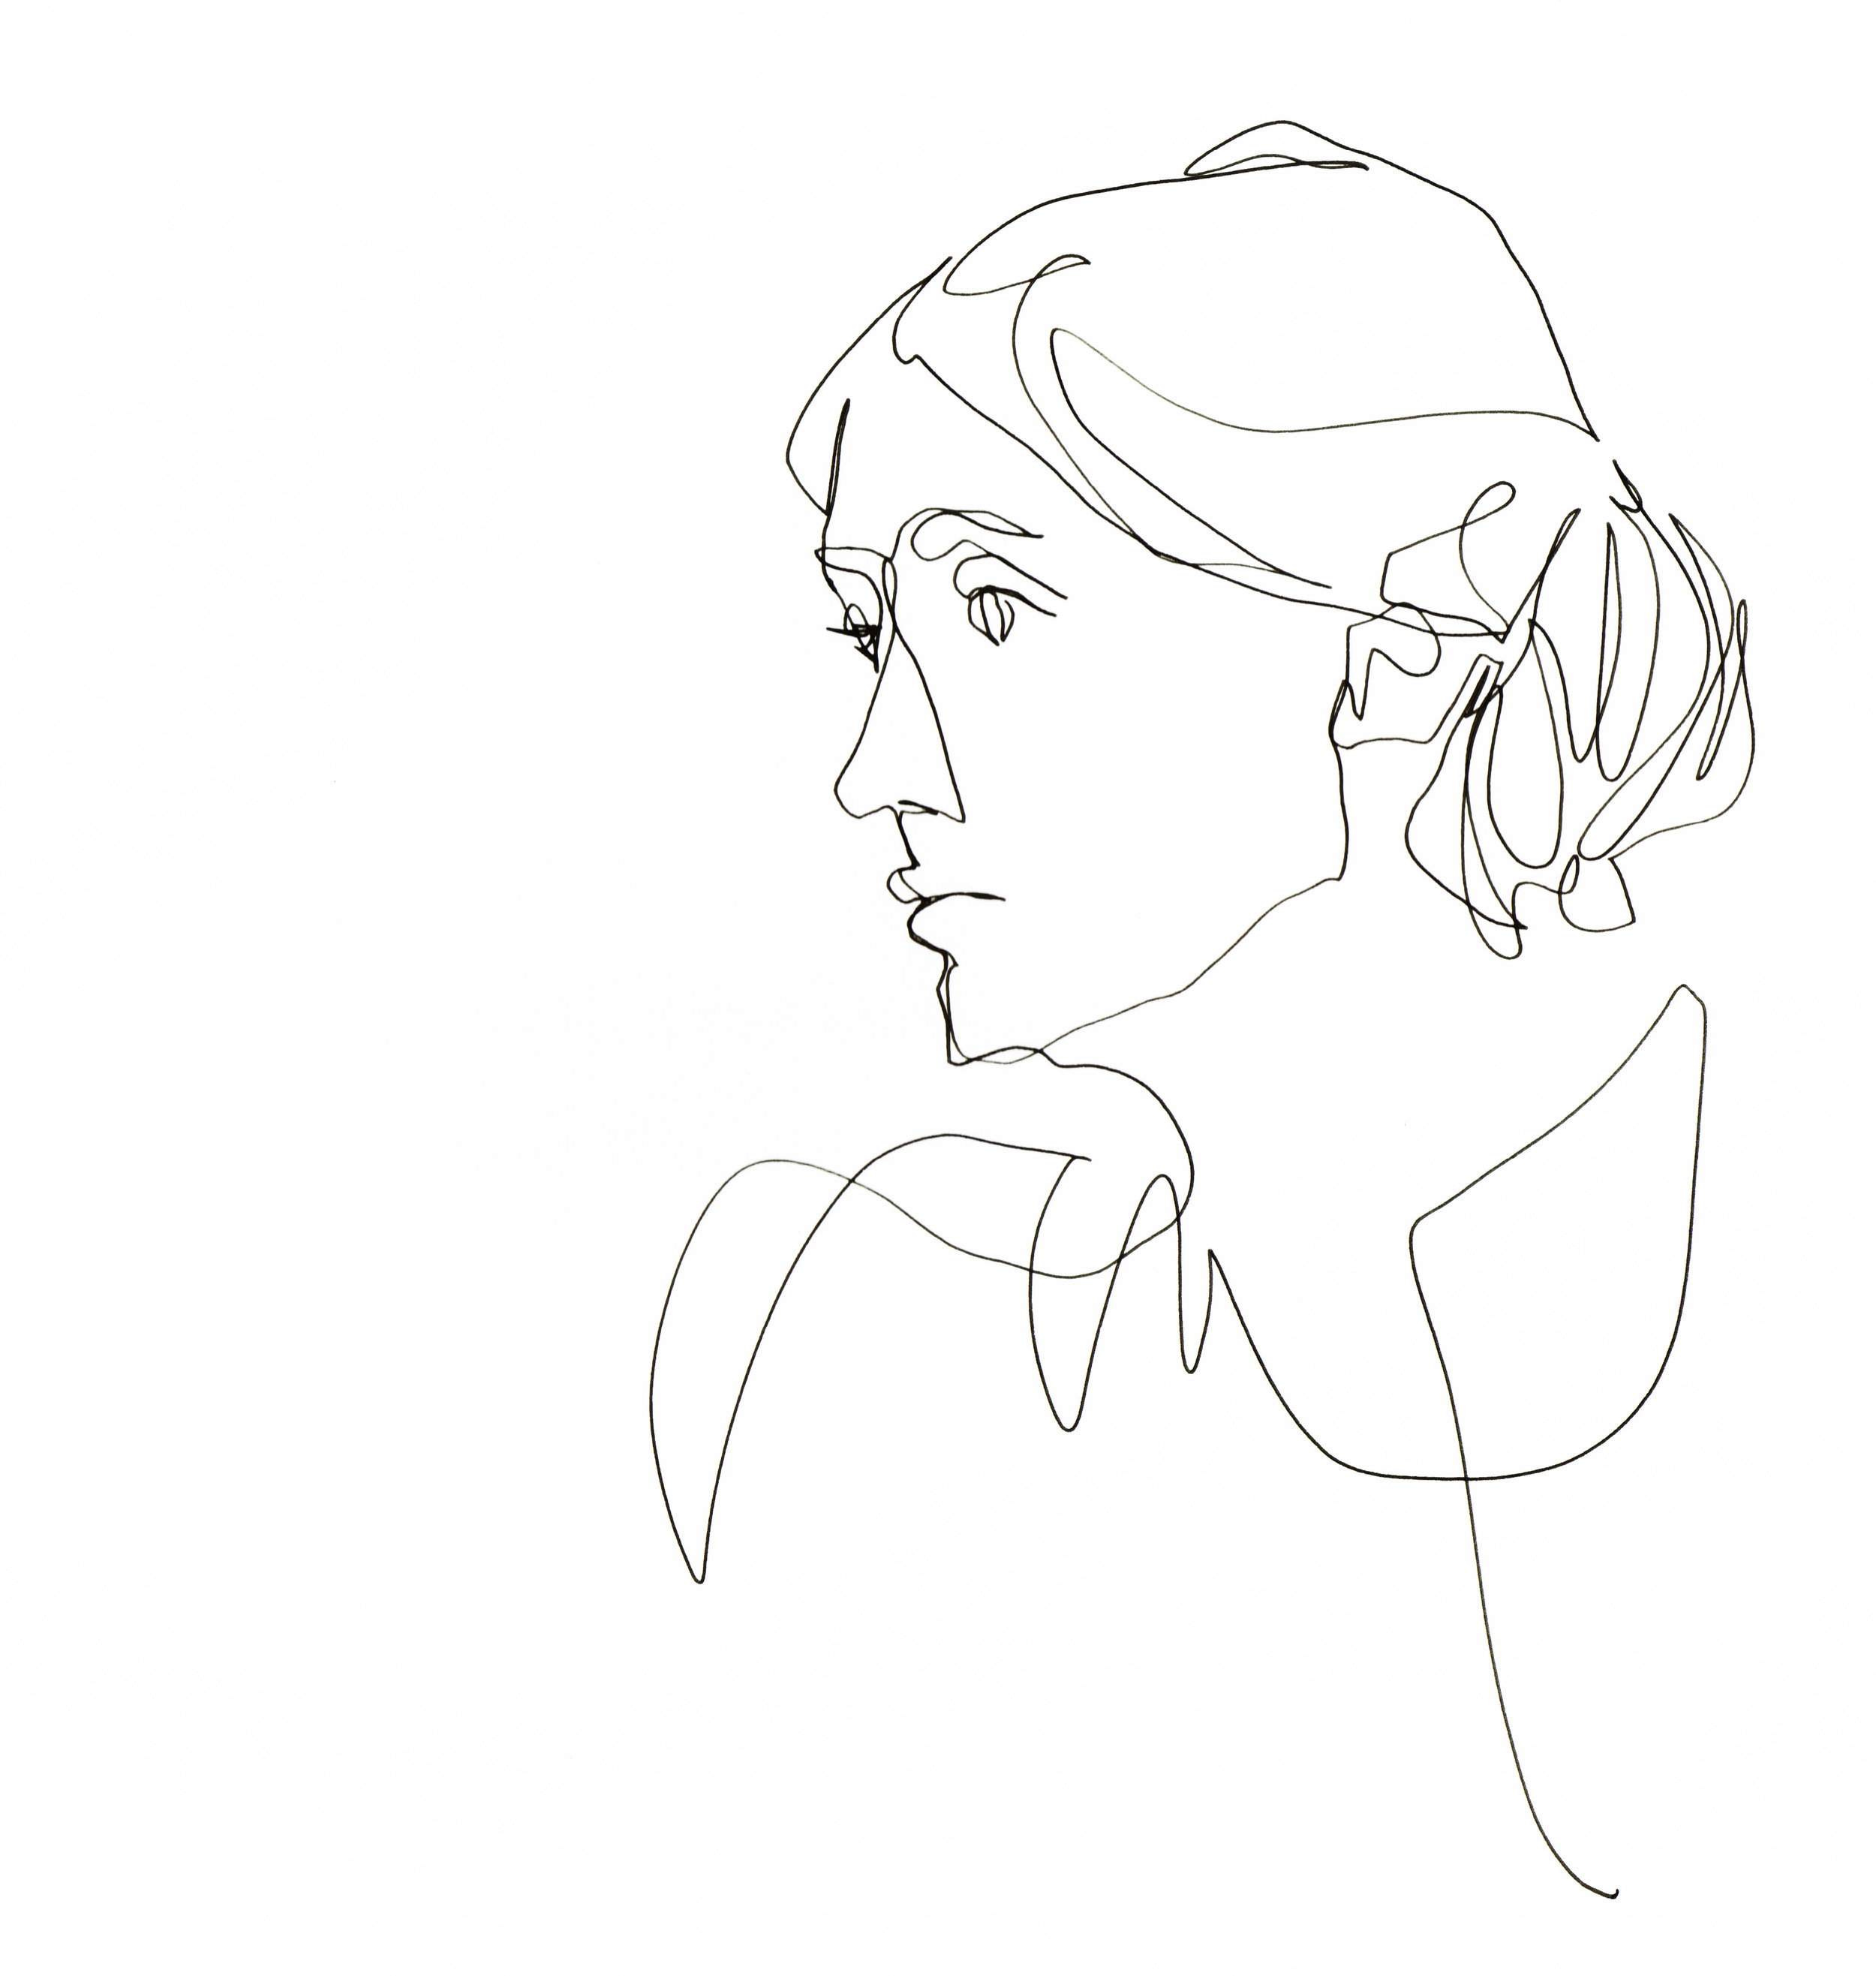 1_Image_Single Continuous Line_Virginia Woolf_©TamarLevi 148.jpg